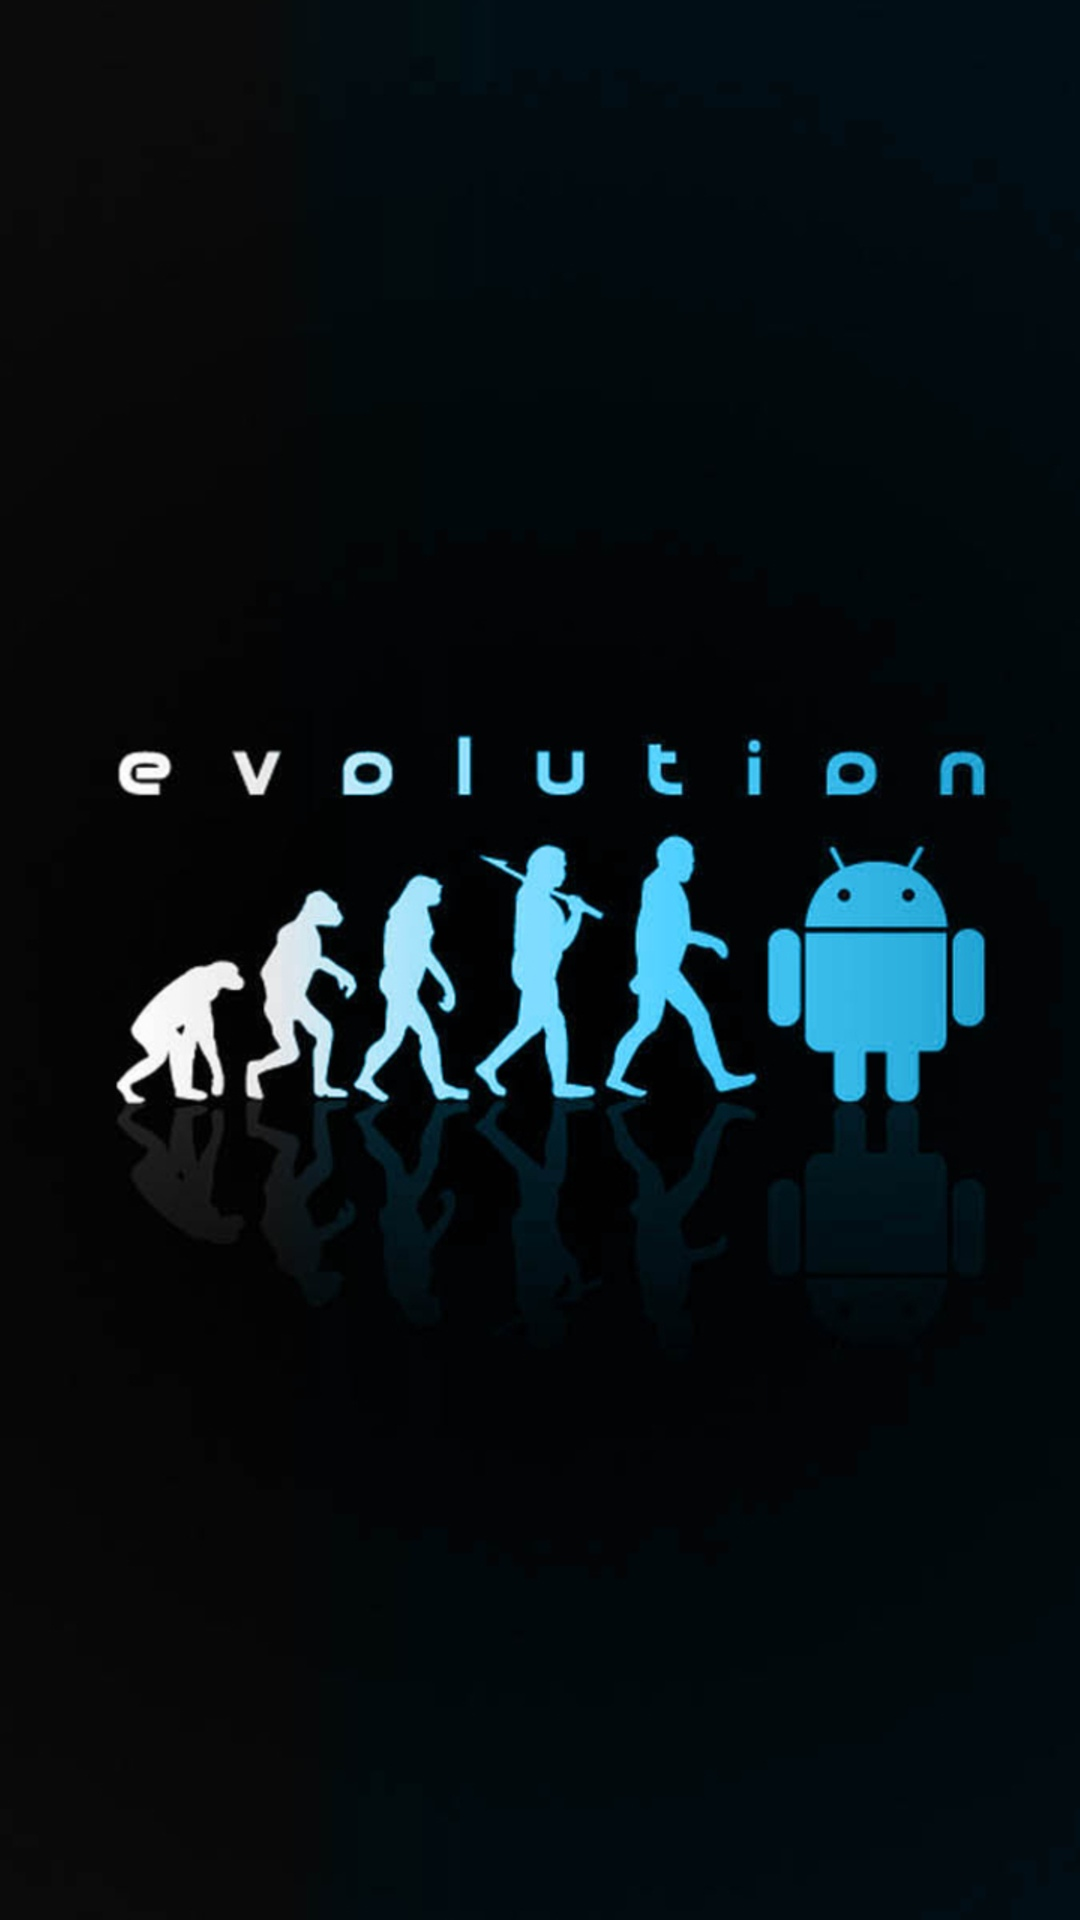 android evolution smartphone wallpapers hd ⋆ getphotos